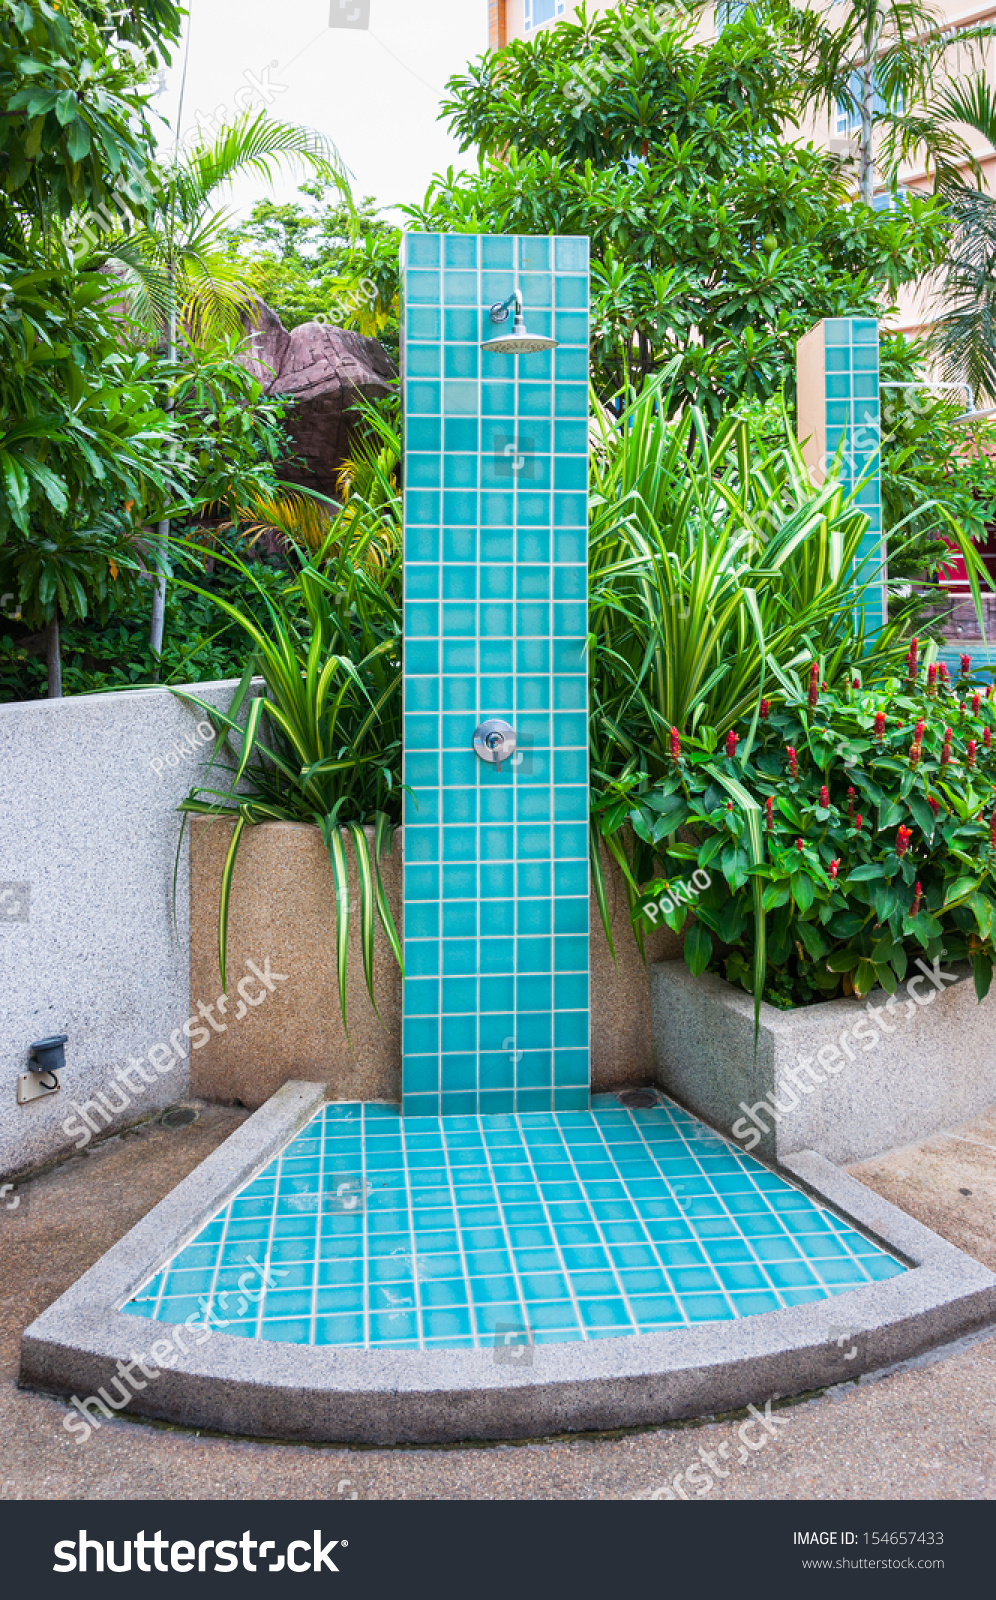 Swimming Pool Showering : Outdoor shower swimming pool stock photo